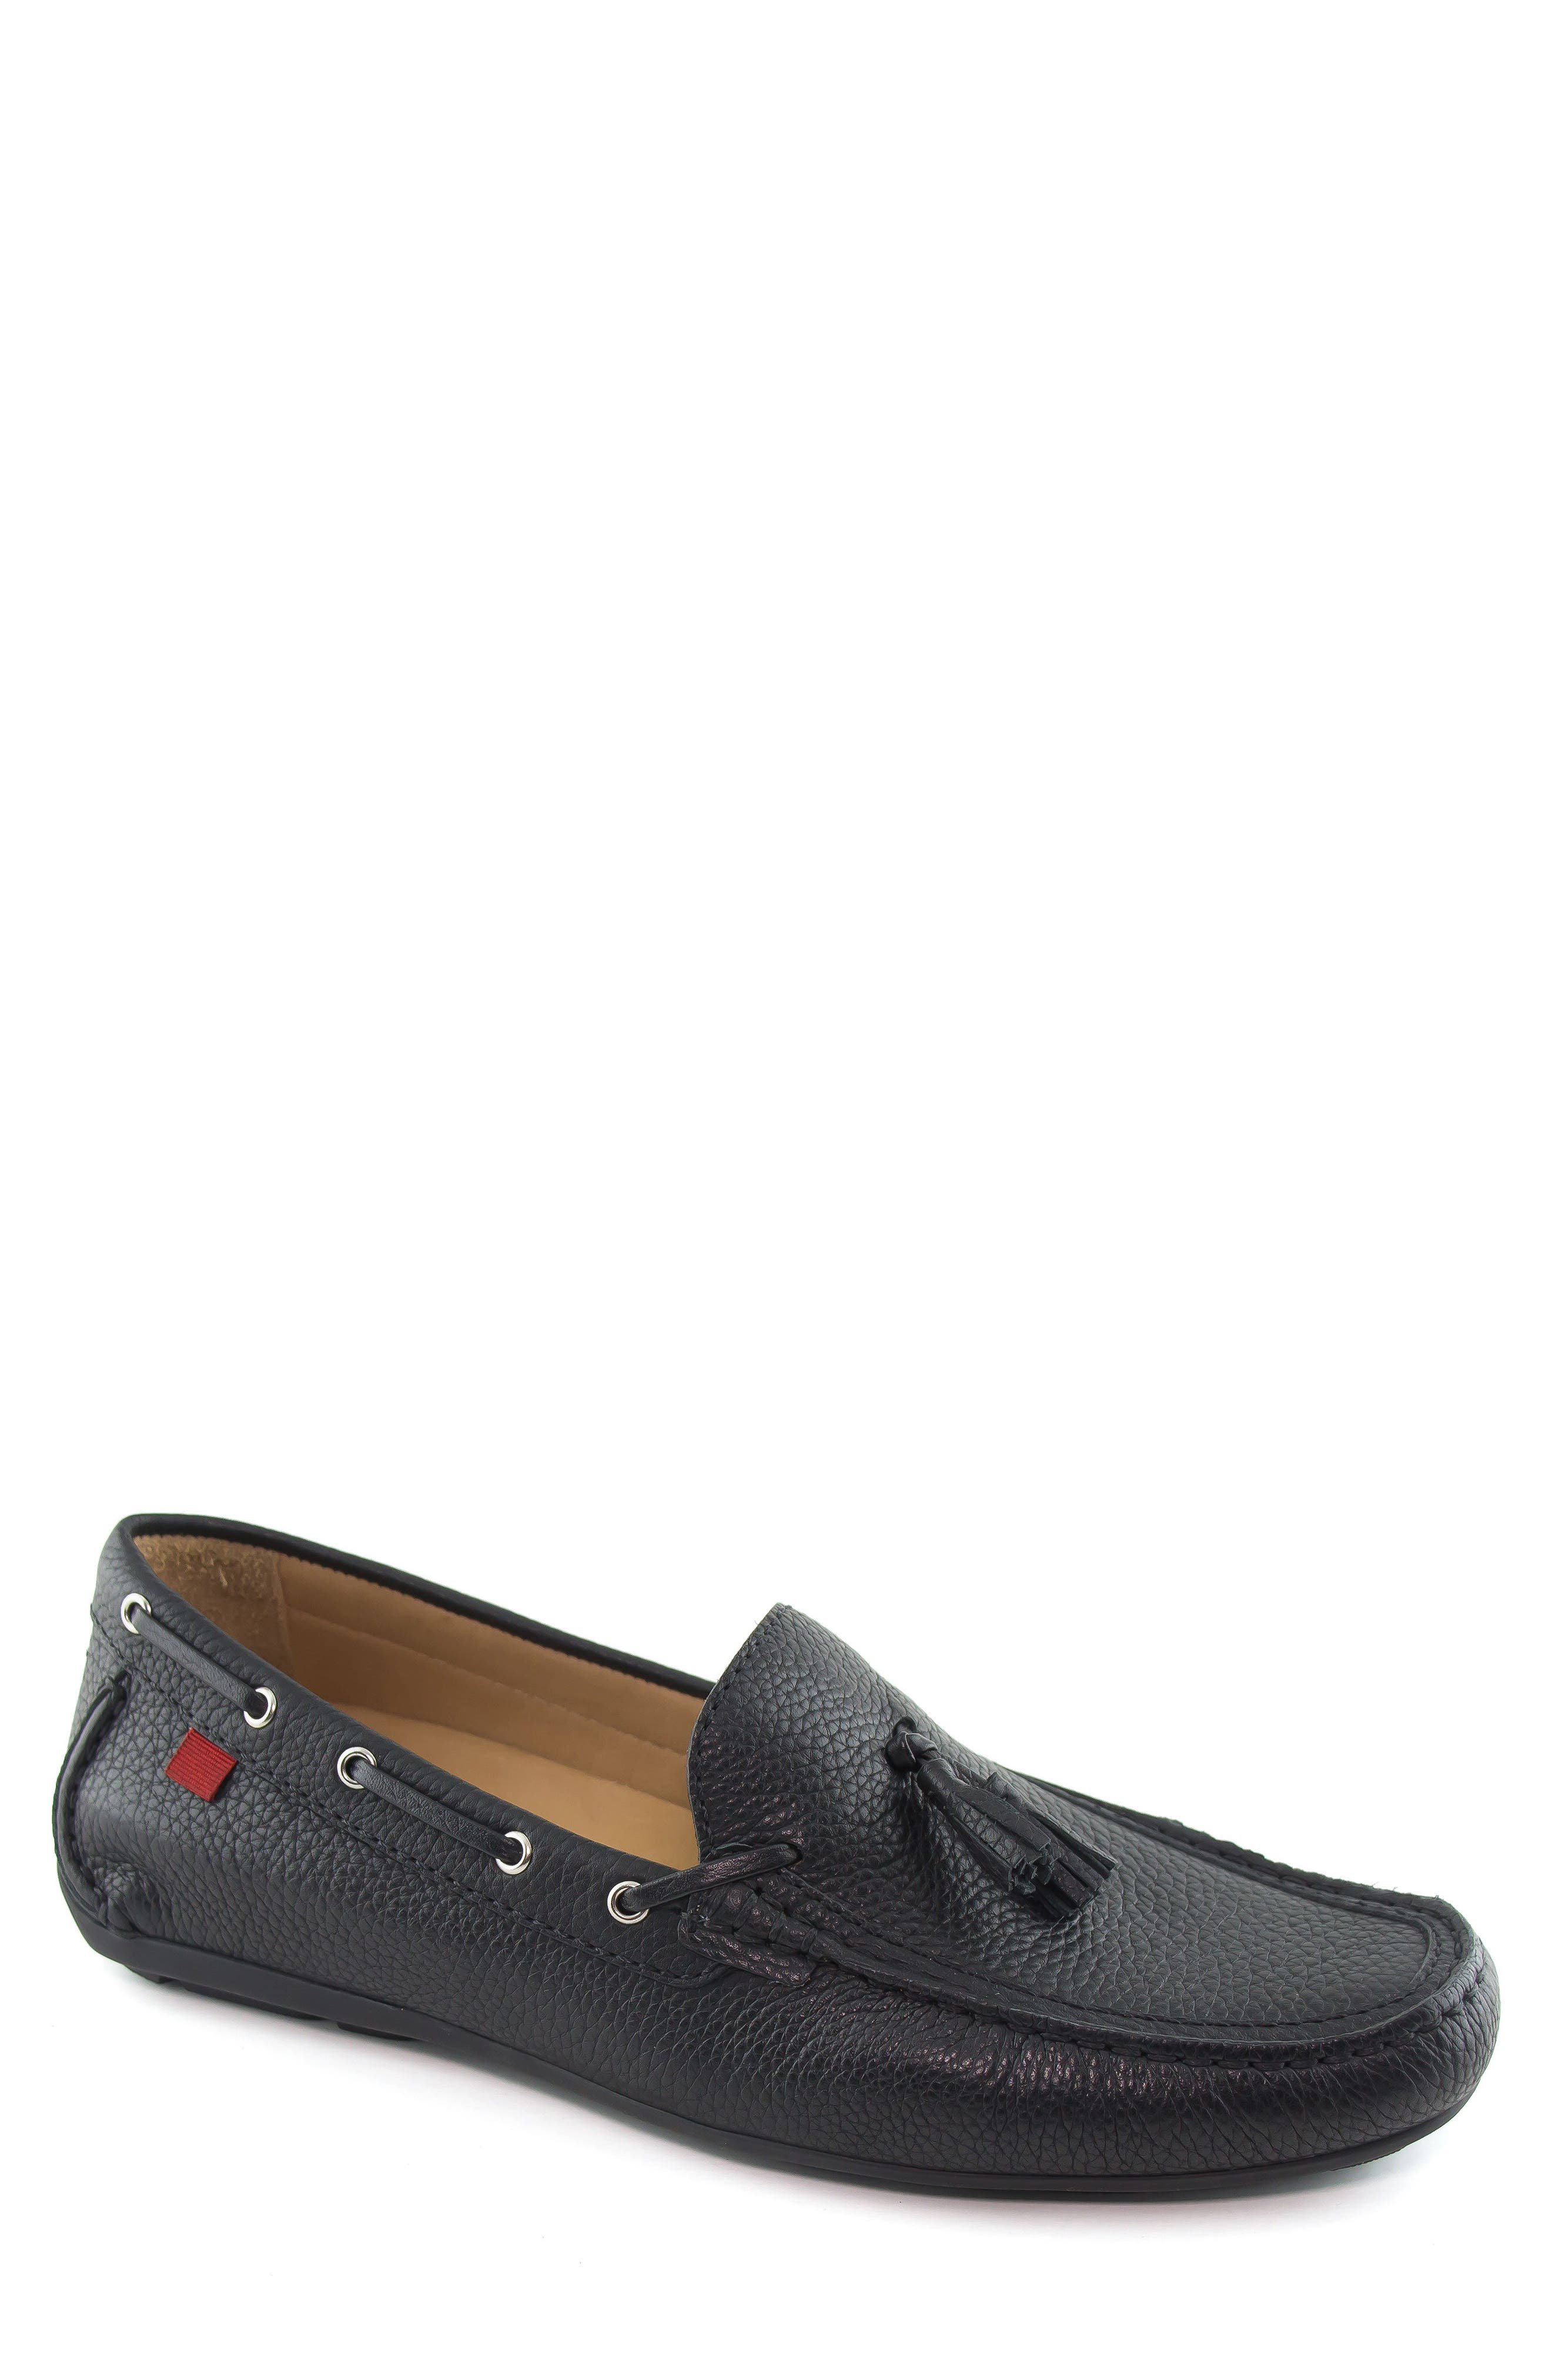 Bushwick Tasseled Driving Loafer,                             Main thumbnail 1, color,                             001